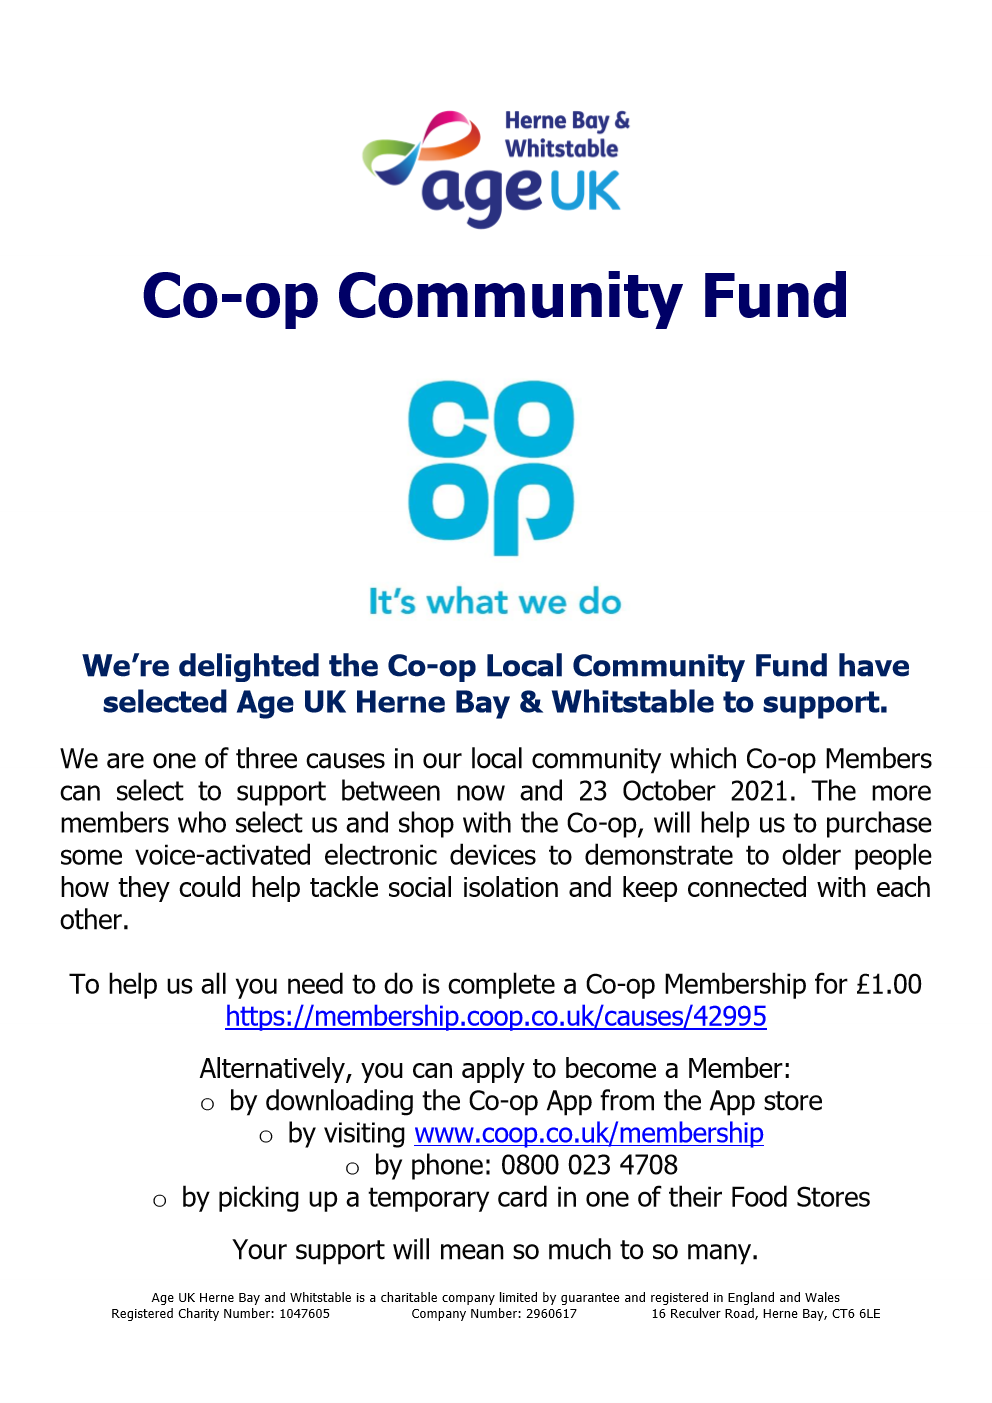 CO-OP COMM. FUND POSTER A4 04.11.20.jpg